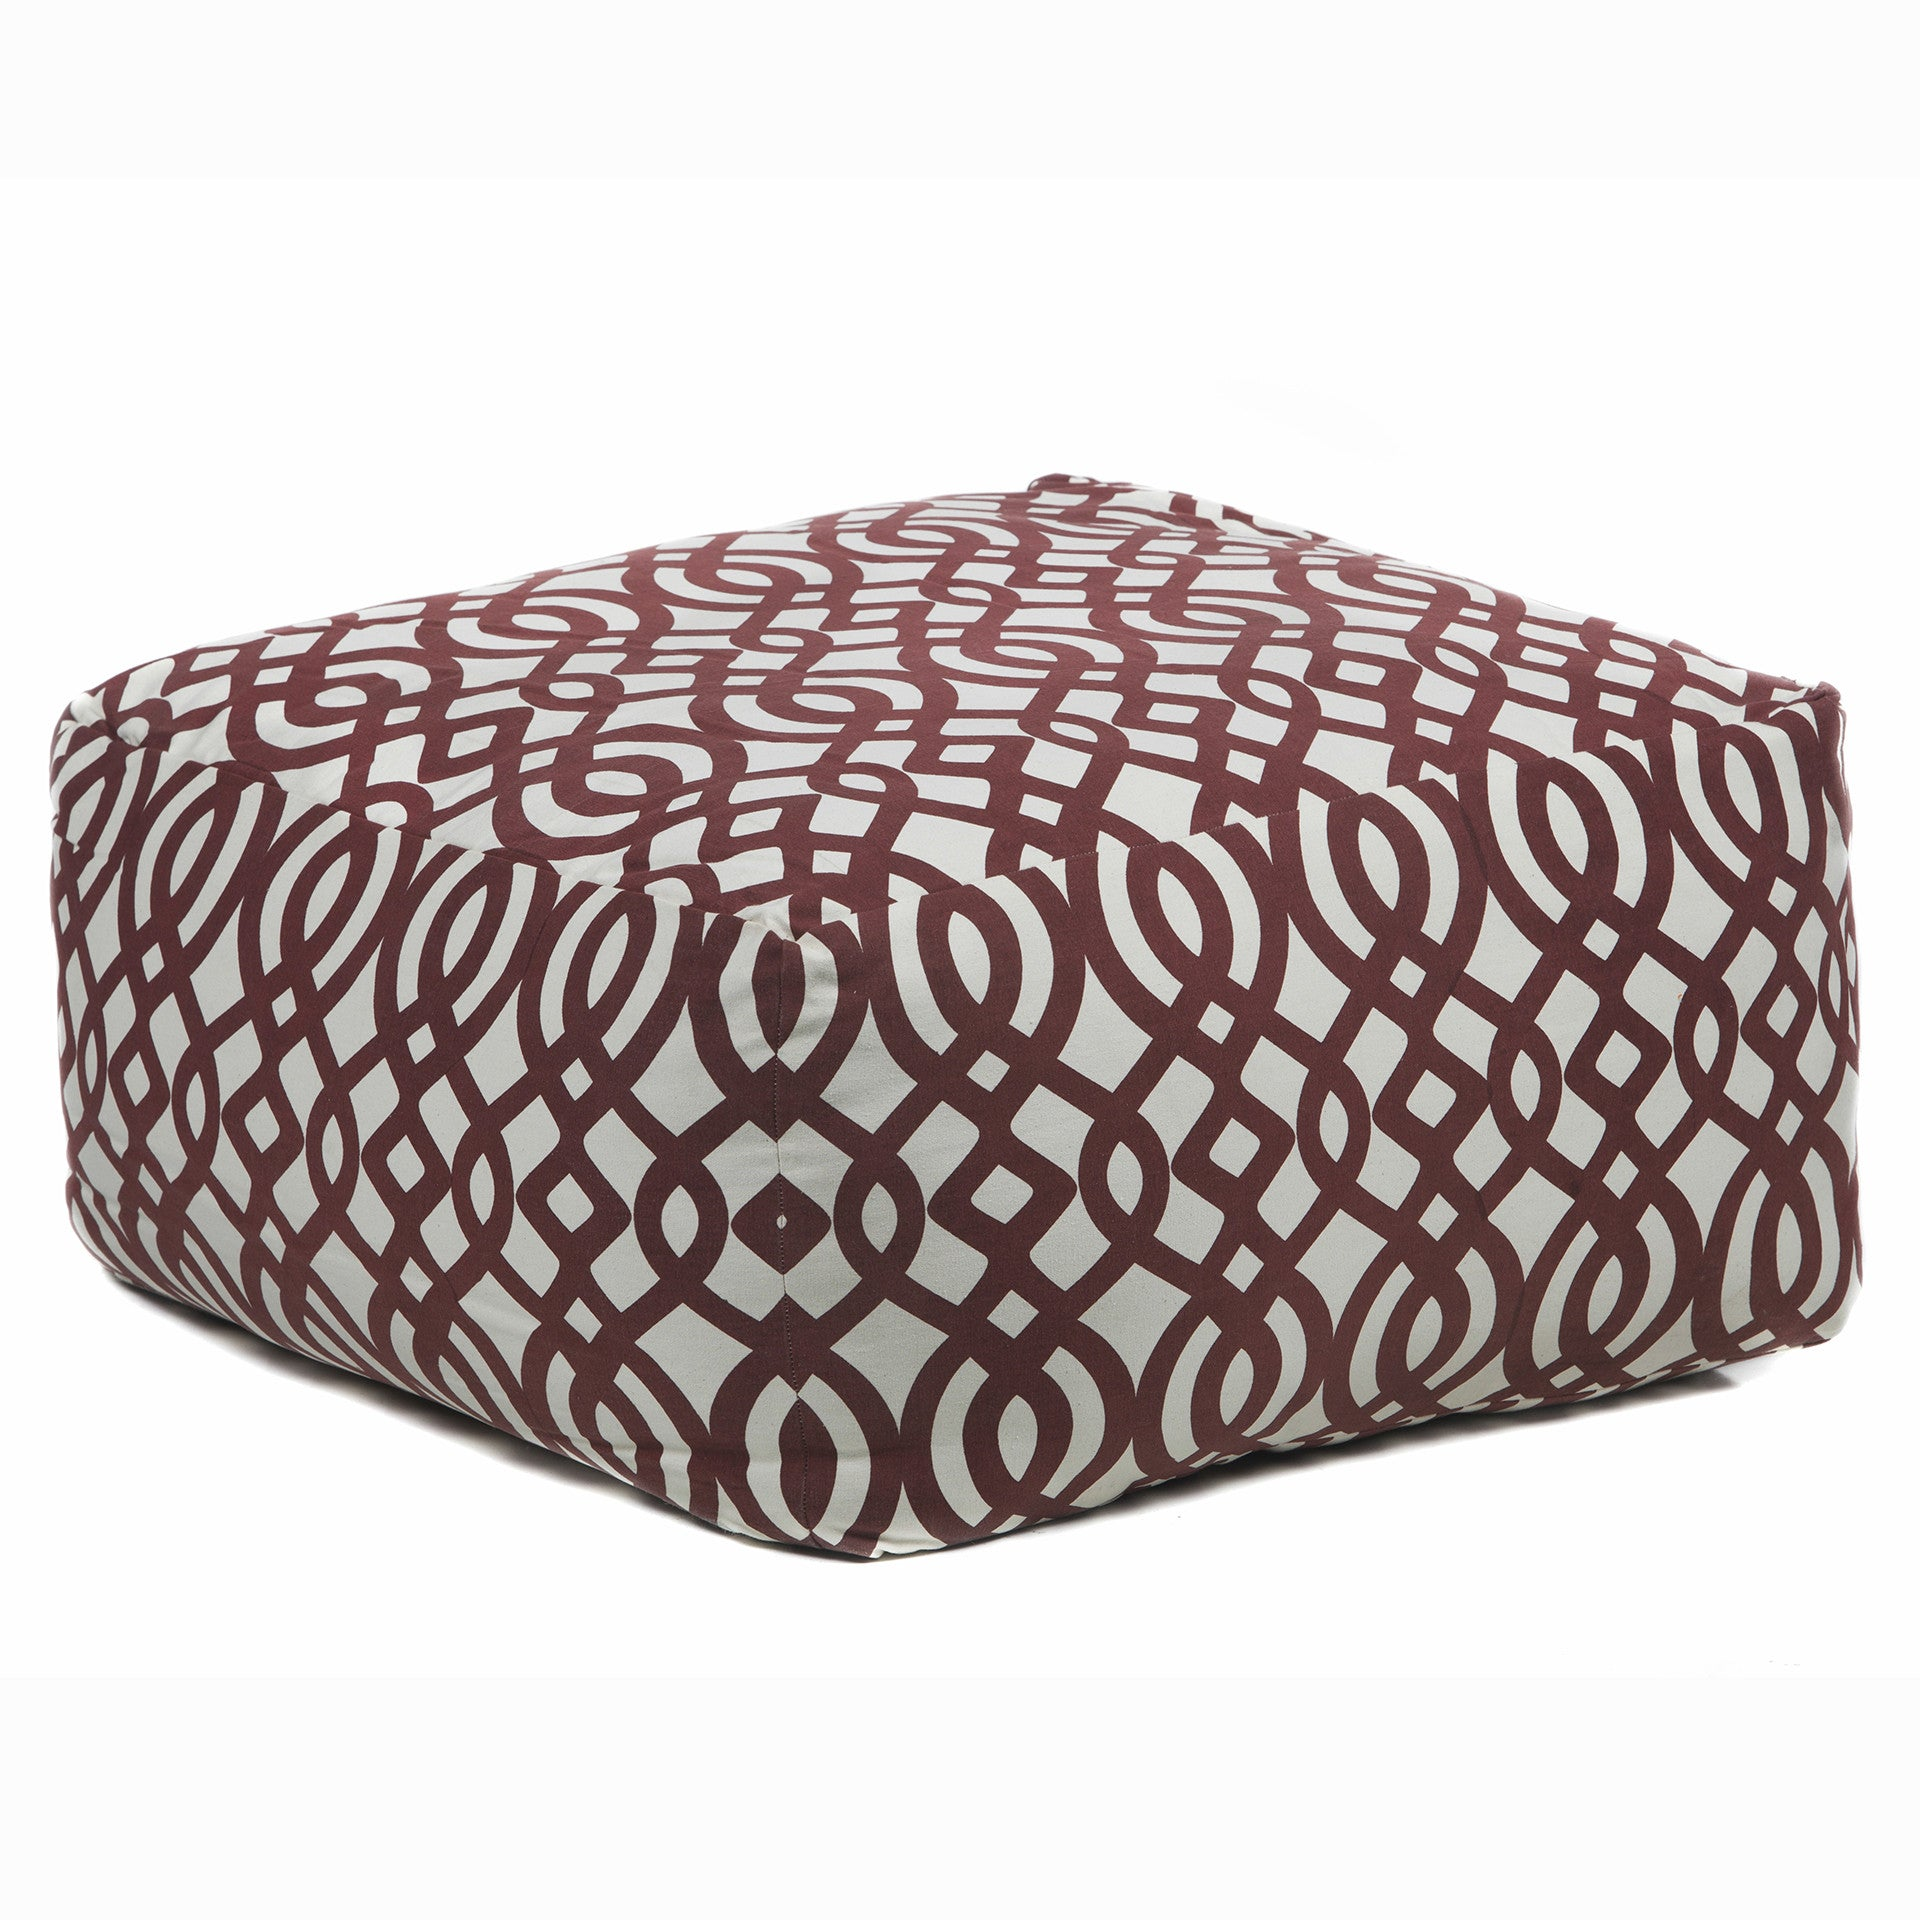 Pouf in Cream & Maroon design by Chandra rugs